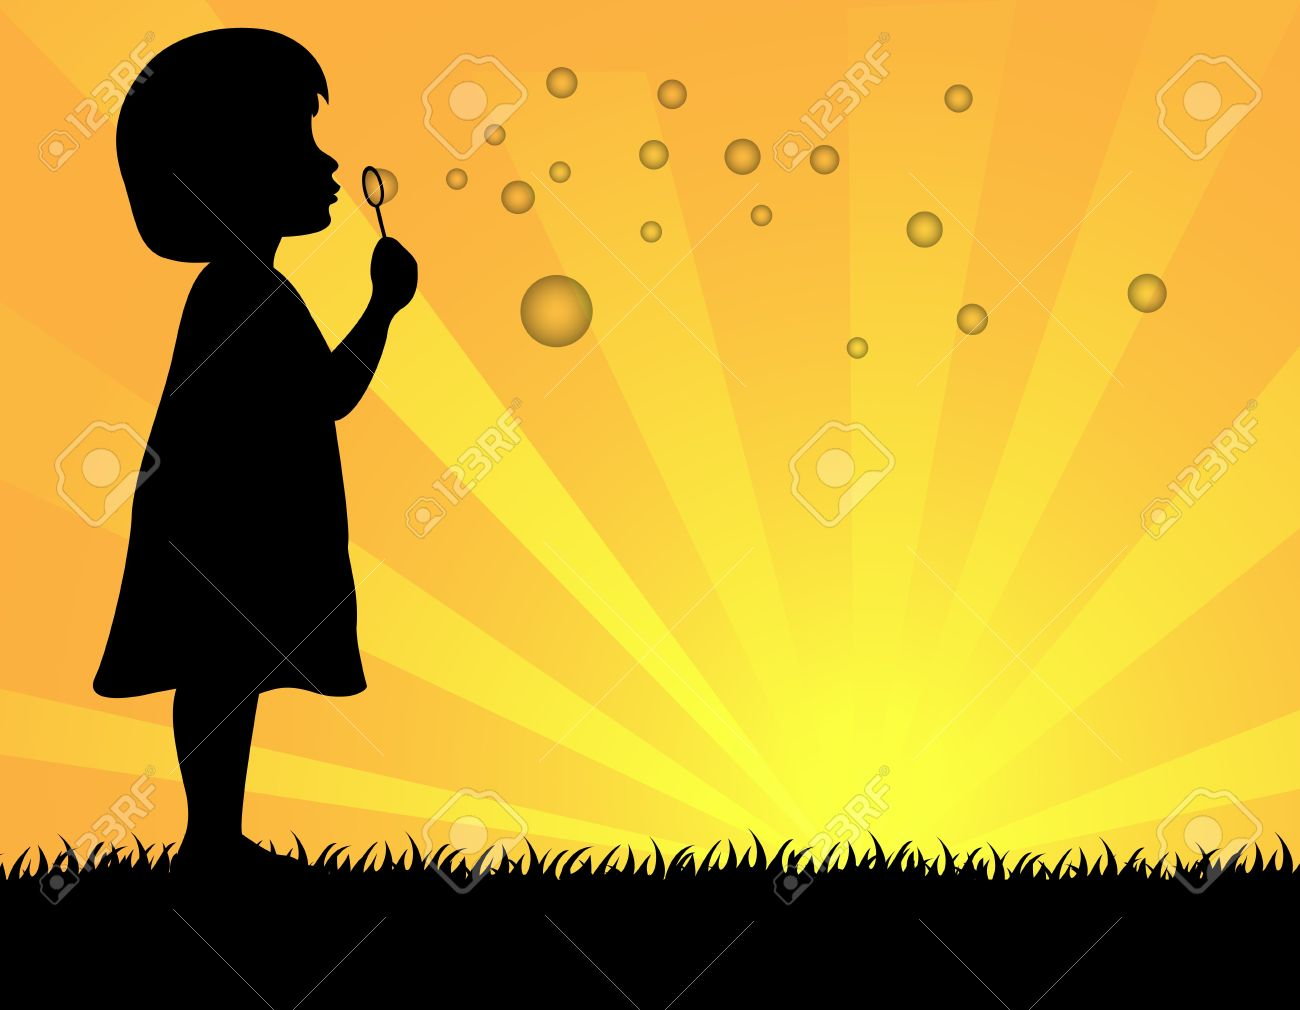 kids blowing bubbles silhouette clipart - Clipground